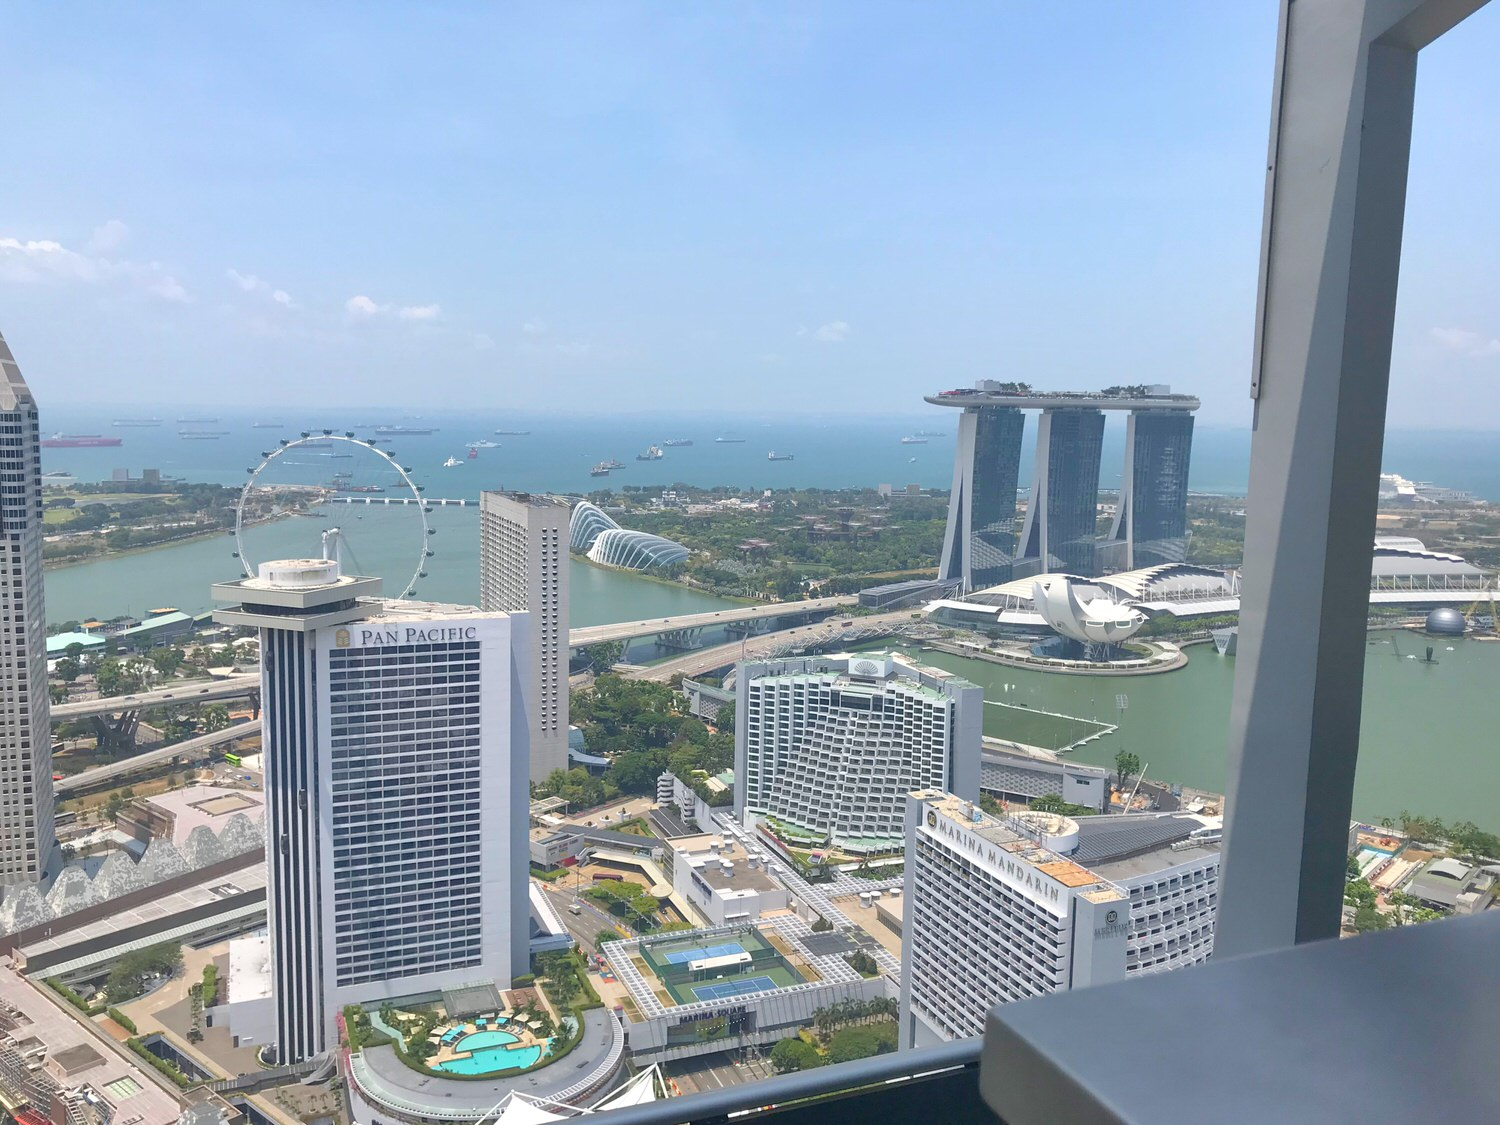 Singapore Luxury Condo View of Marina Bay | SG Luxury Condo